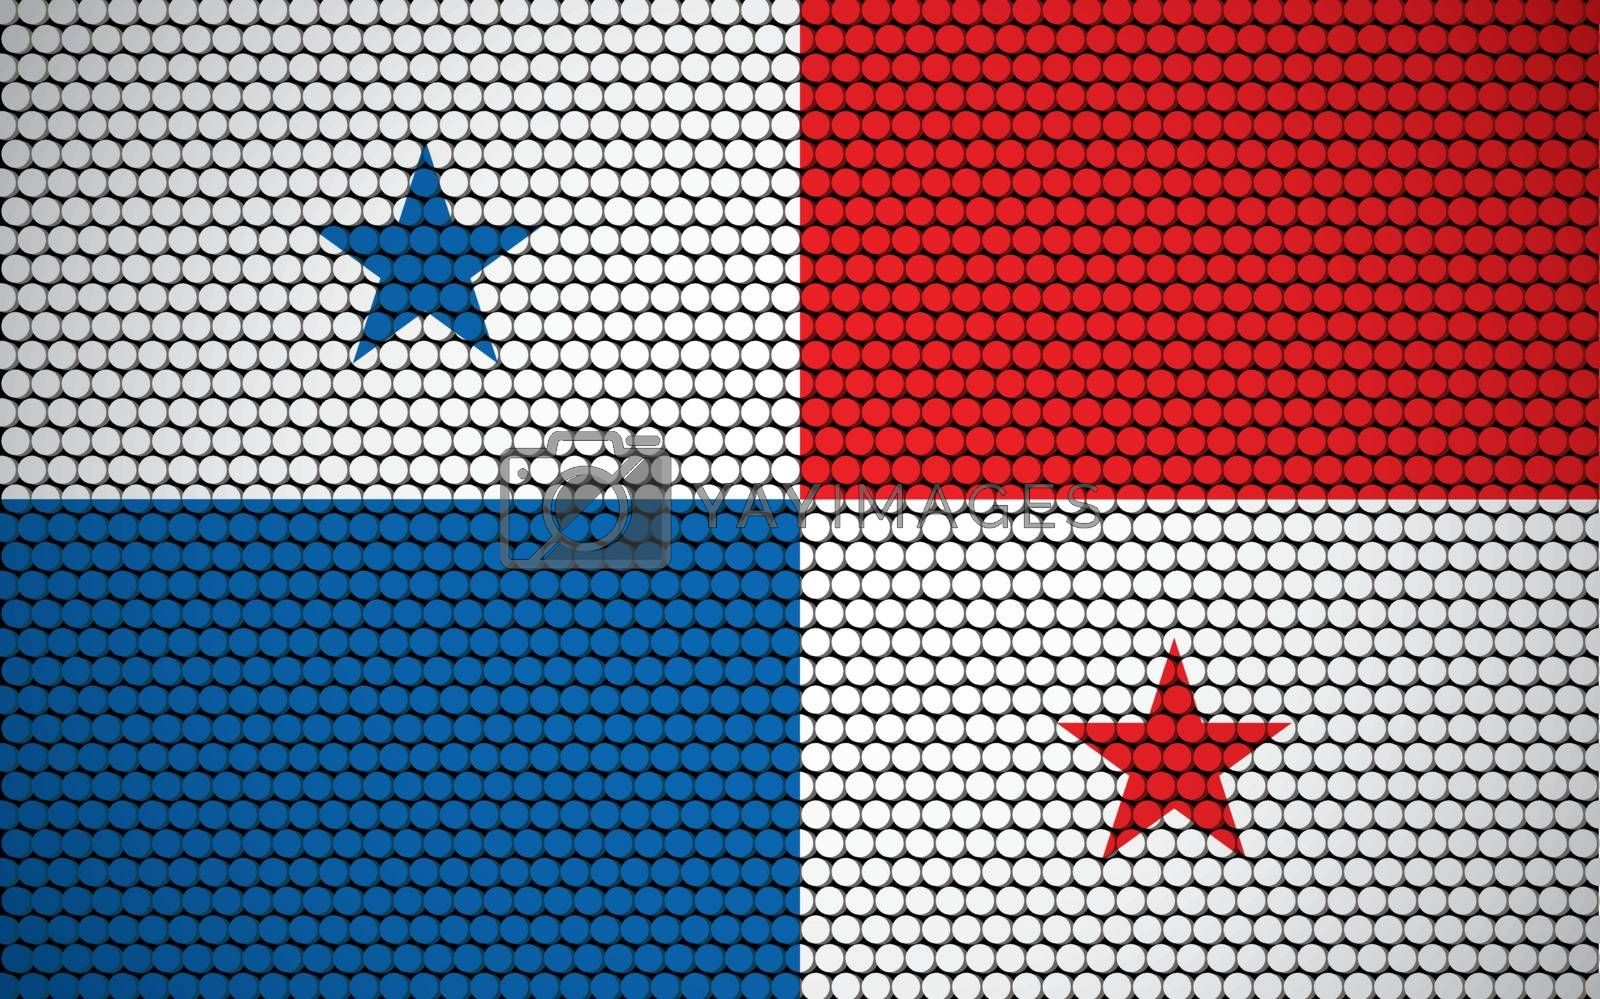 Abstract flag of Panama made of circles. Panamanian flag designed with colored dots giving it a modern and futuristic abstract look.